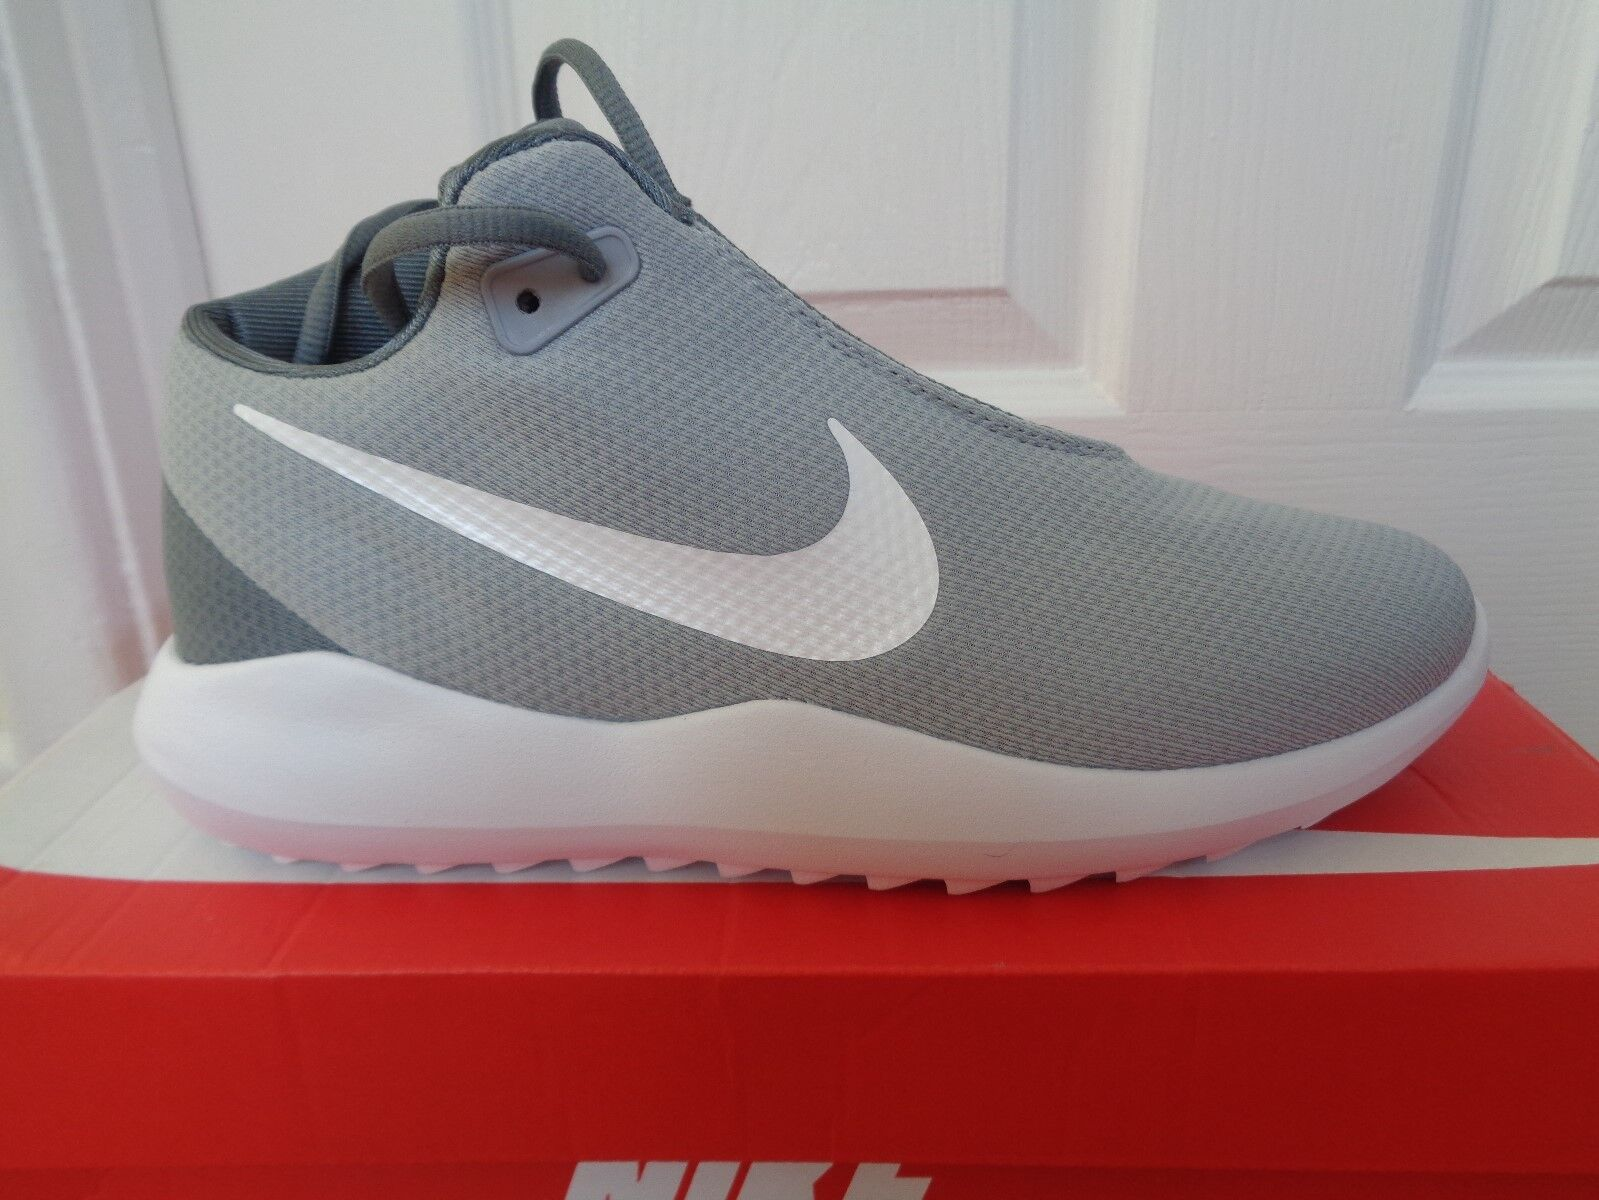 Nike Jamaza Femme trainers Baskets chaussures 6 882264 40 001 uk 6 chaussures eu 14c7ad